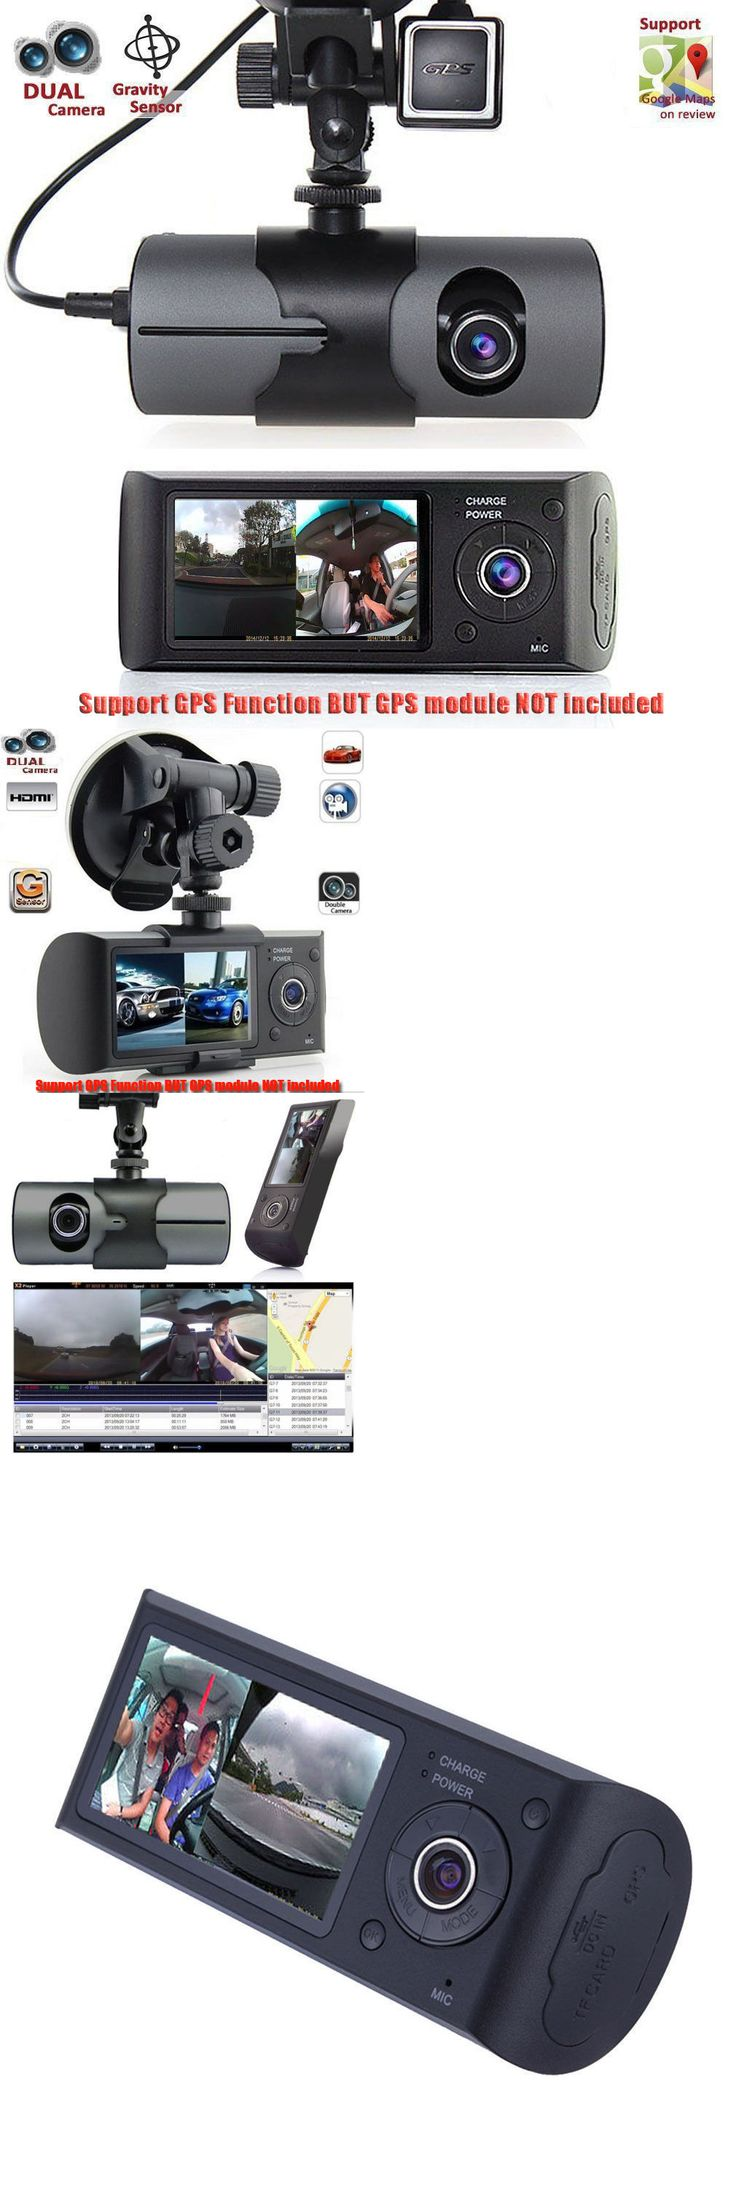 Other Car Video: 2.7 1080P Vehicle Car Dvr Camera Video Recorder Dash Cam G-Sensor Gps Dual Lens -> BUY IT NOW ONLY: $38.21 on eBay!